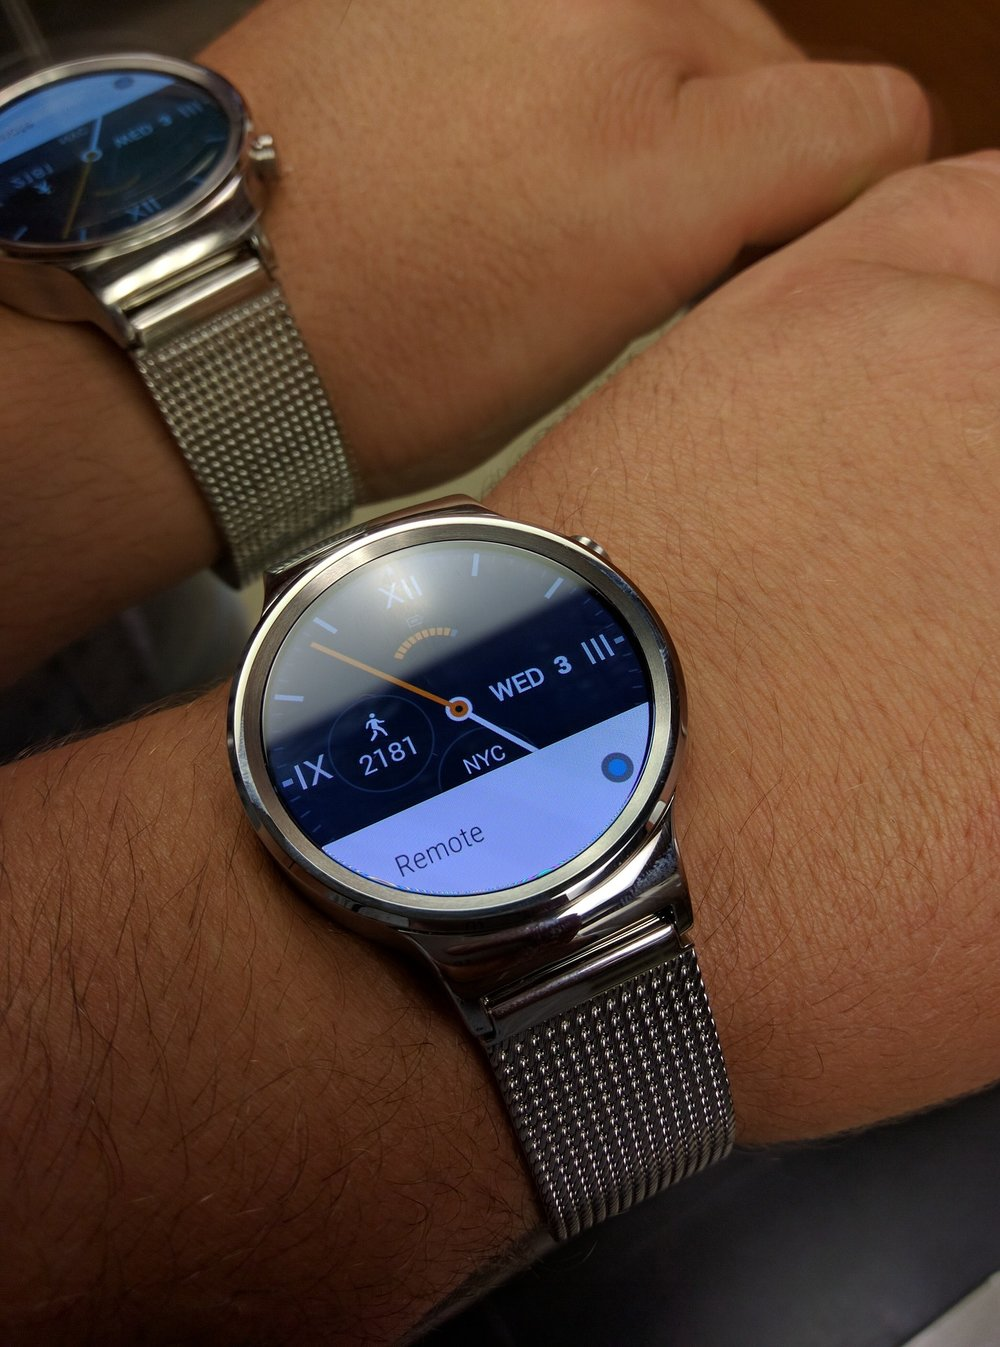 Huawei Watch. Courtesy: moldovancsaba, Pixabay